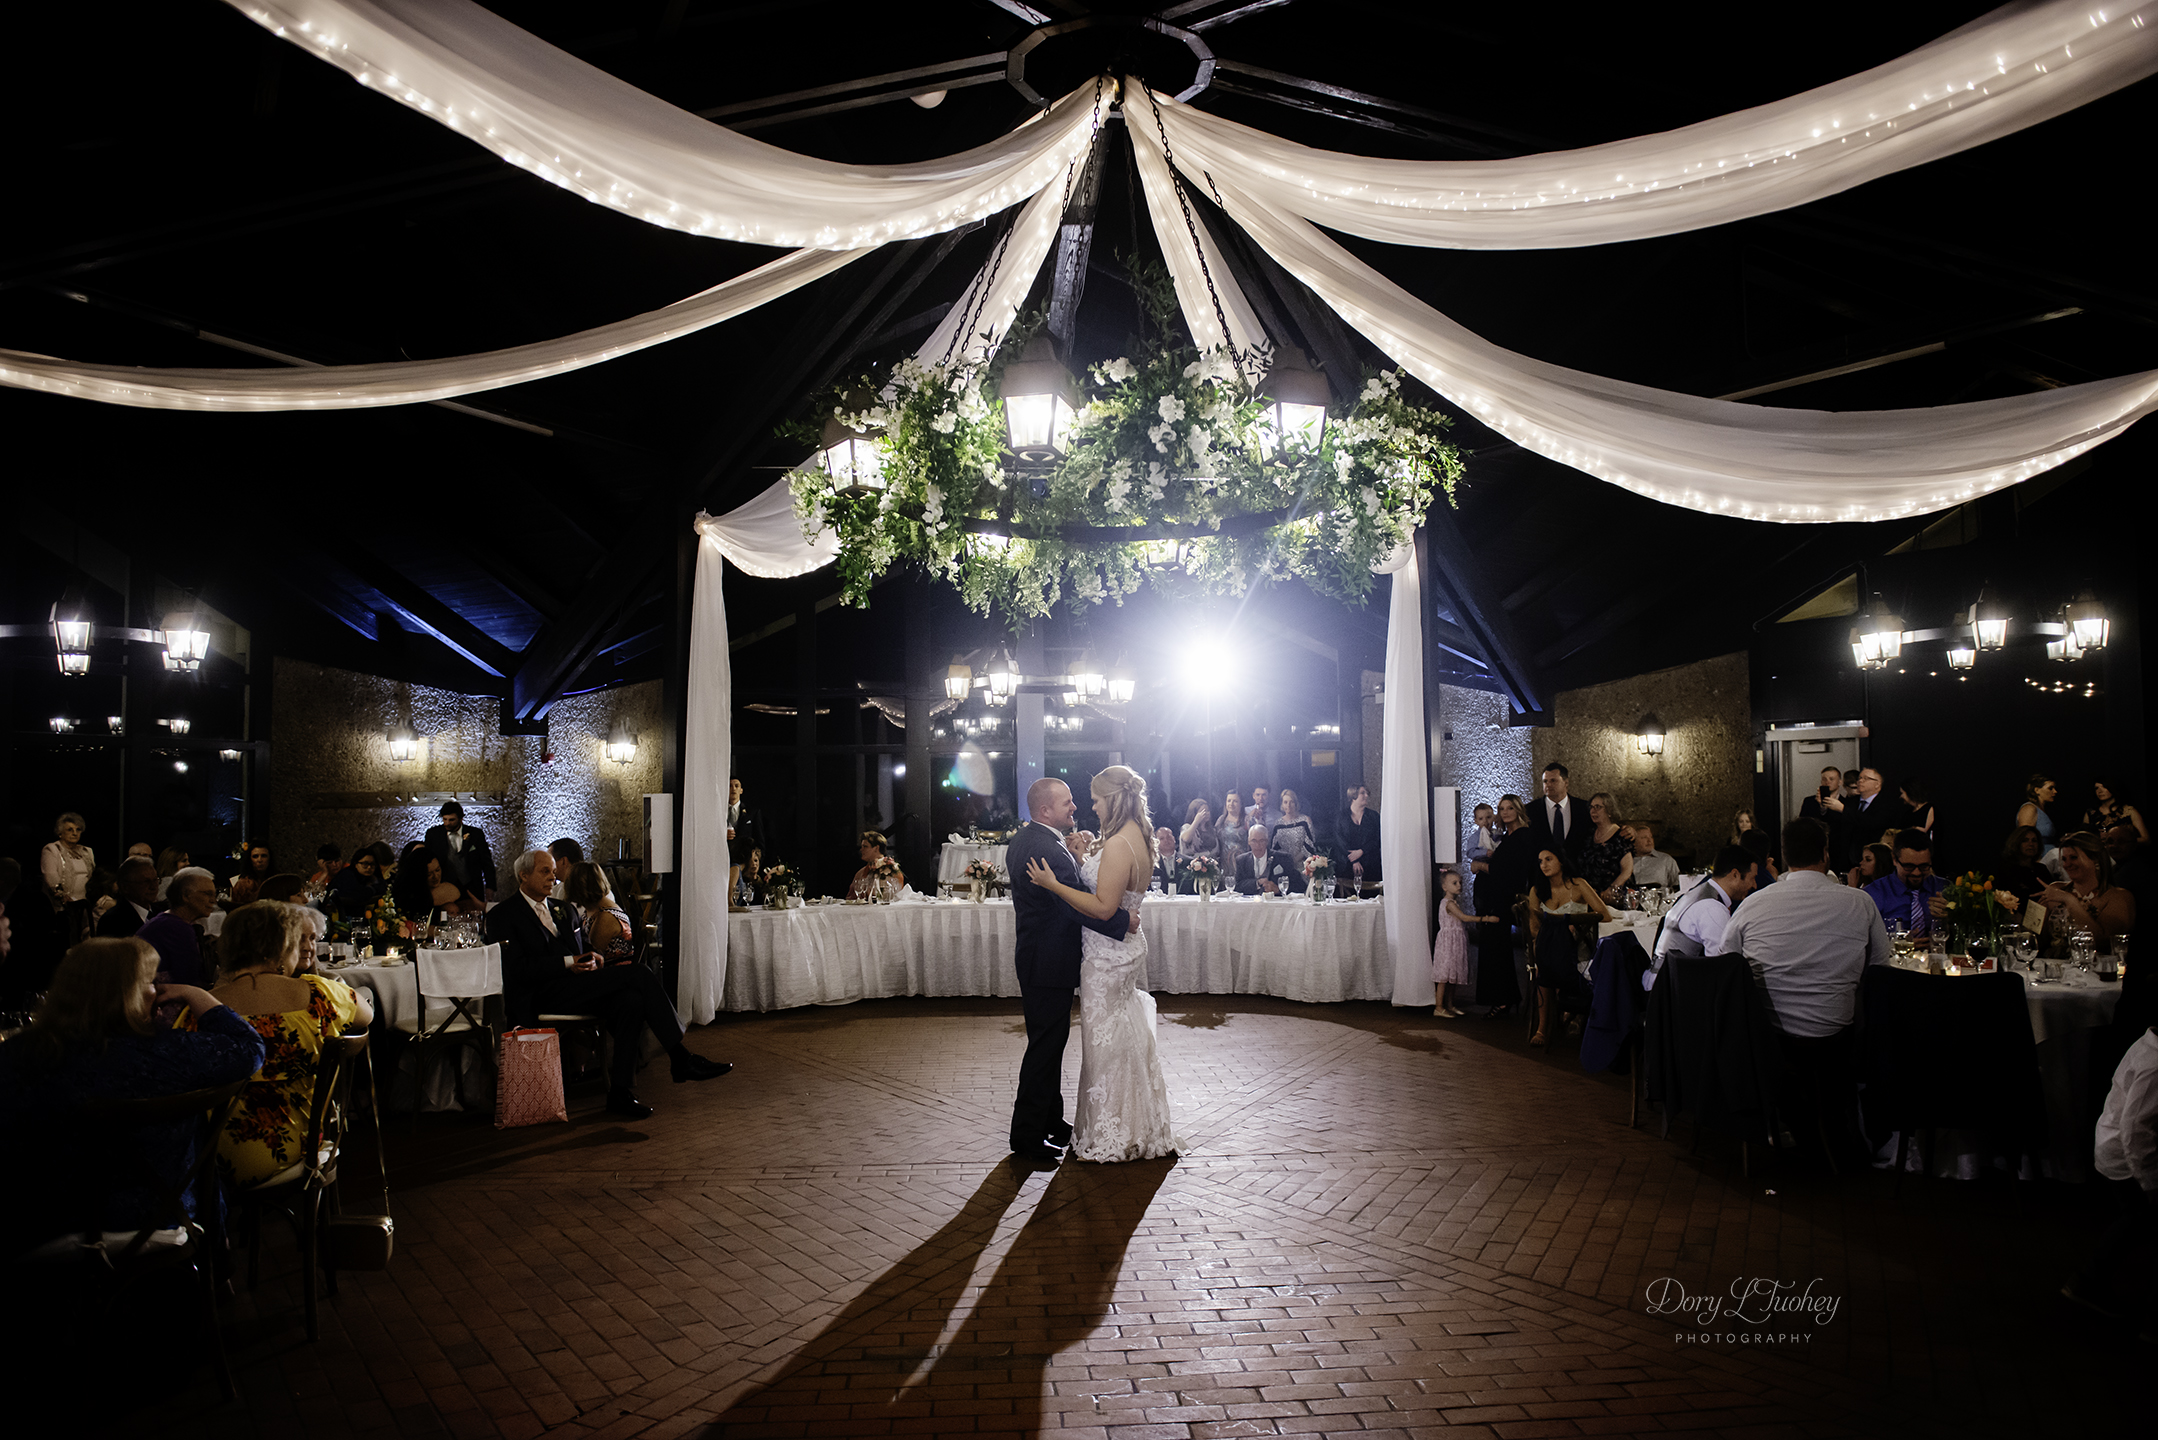 Dory_photography_lake_geneva_grand_wisconsin_illinois_reception_first_dance_rings_wedding_spring_love_blue_11.jpg